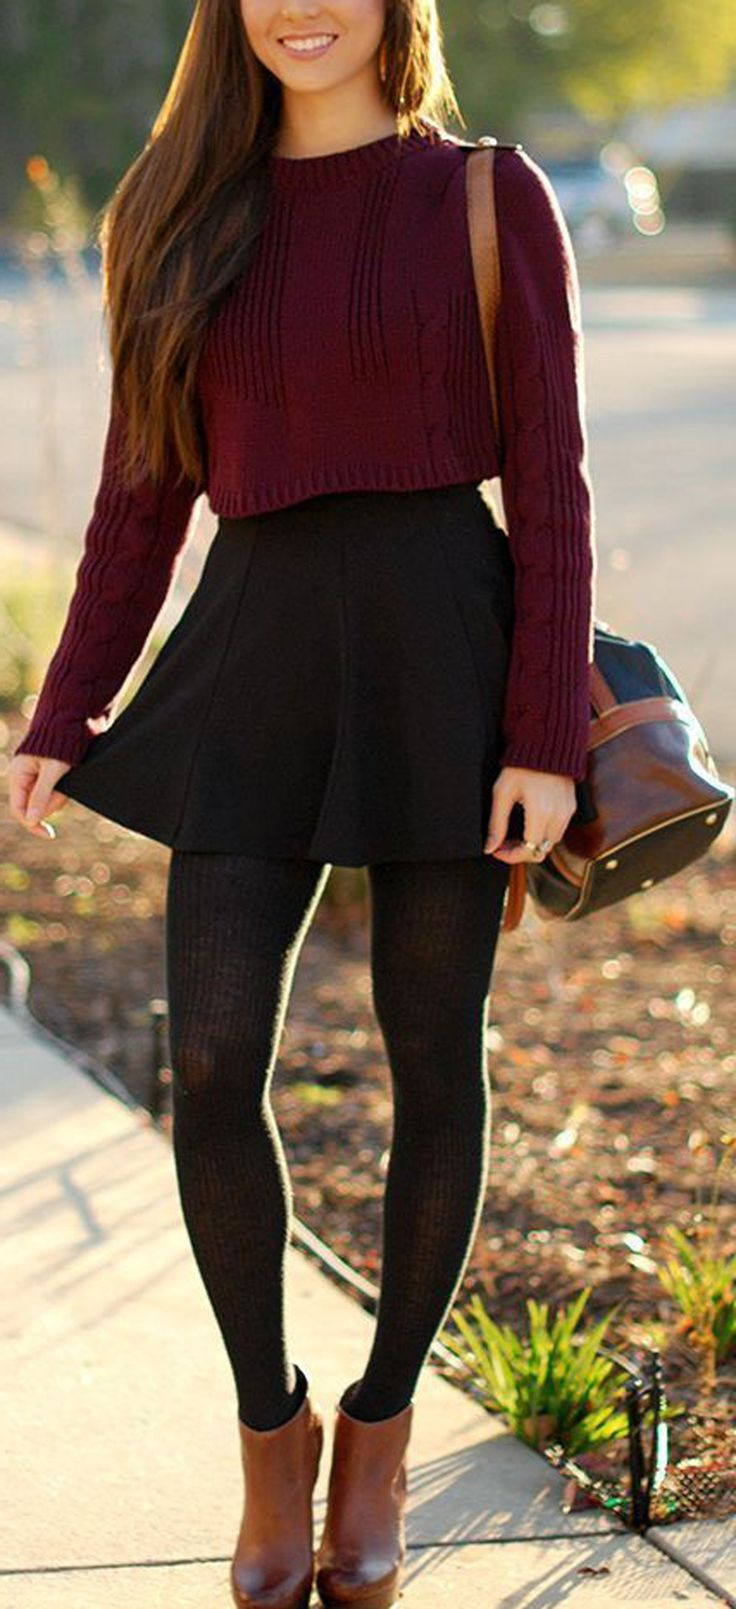 Classy Winter Outfit Ideas for Teenagers for Teen Girls Crop Top Skater Skirt Stockings Booties - www.Poshiroo.com